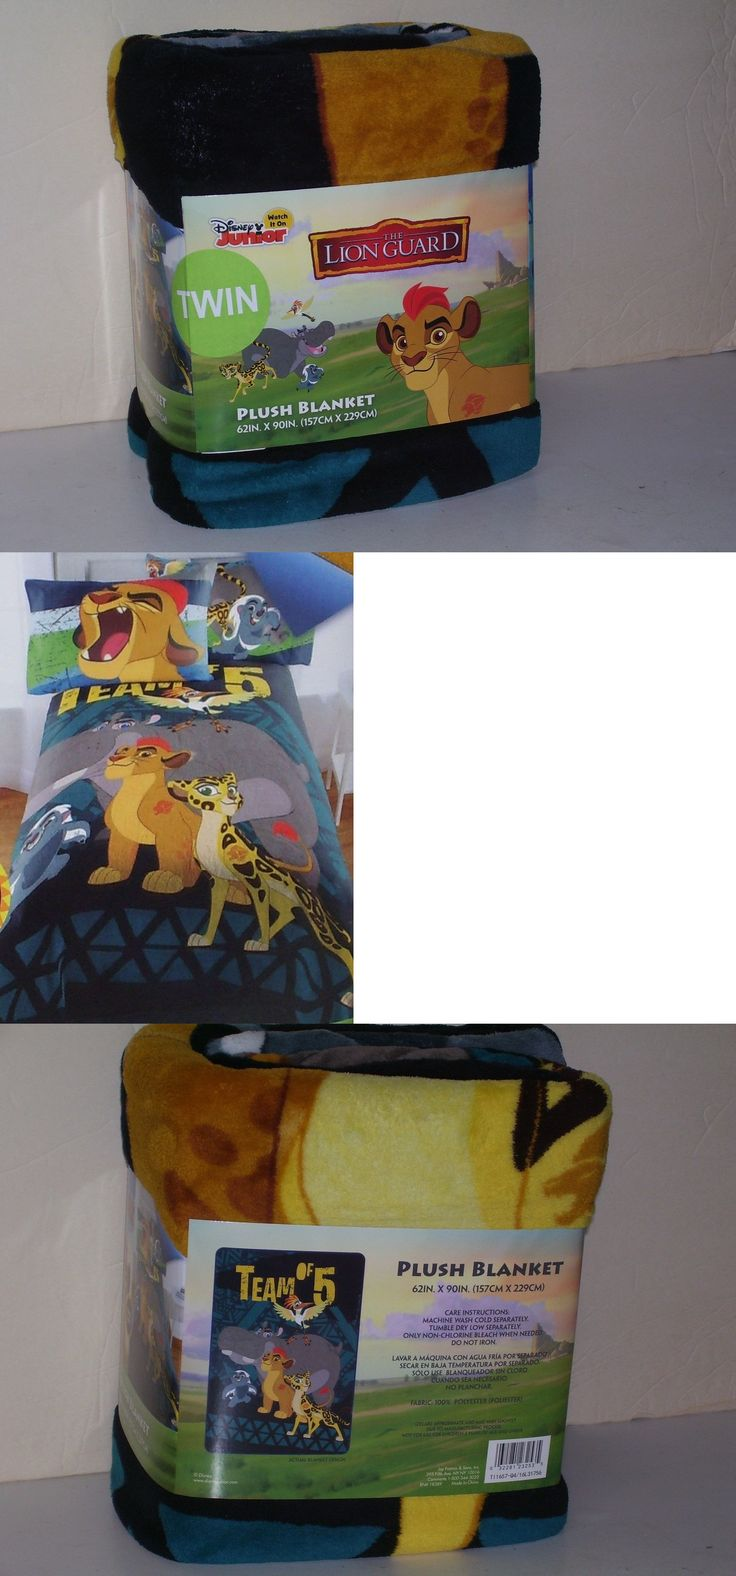 Blankets and Throws 66727: Disney Junior The Lion Guard Twin Plush Blanket  62 X 90